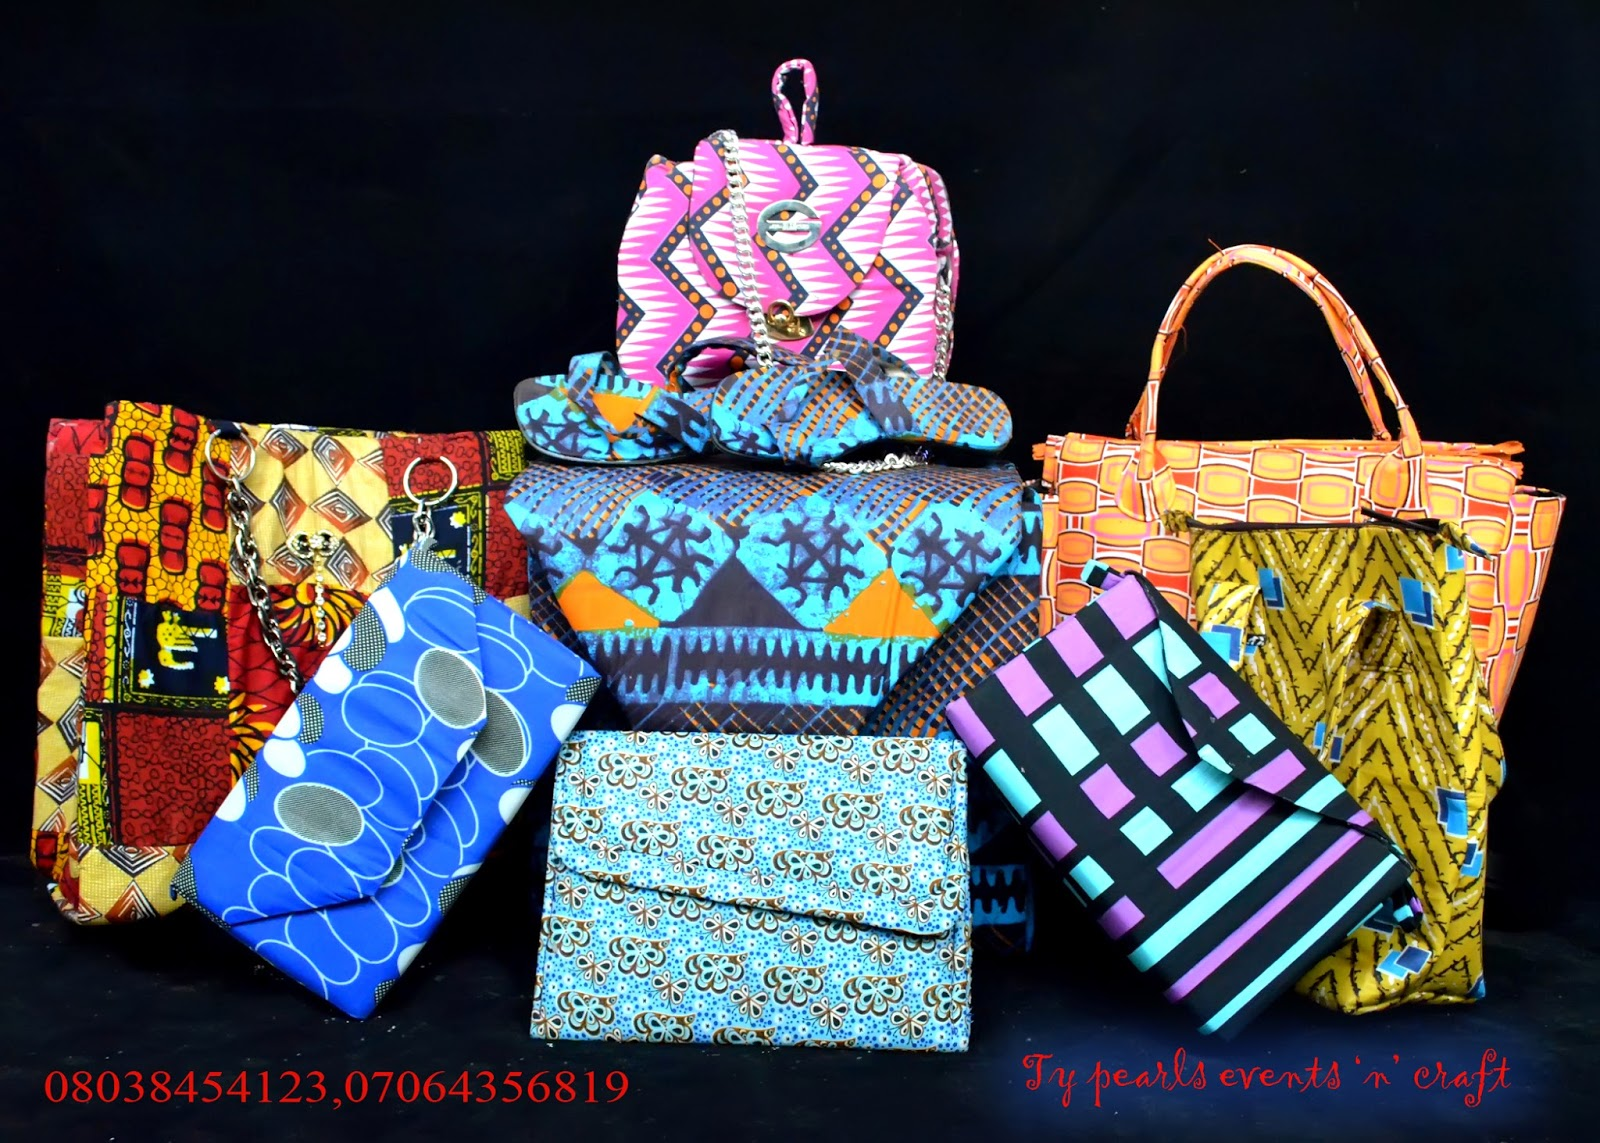 Ankara crafts-typearls